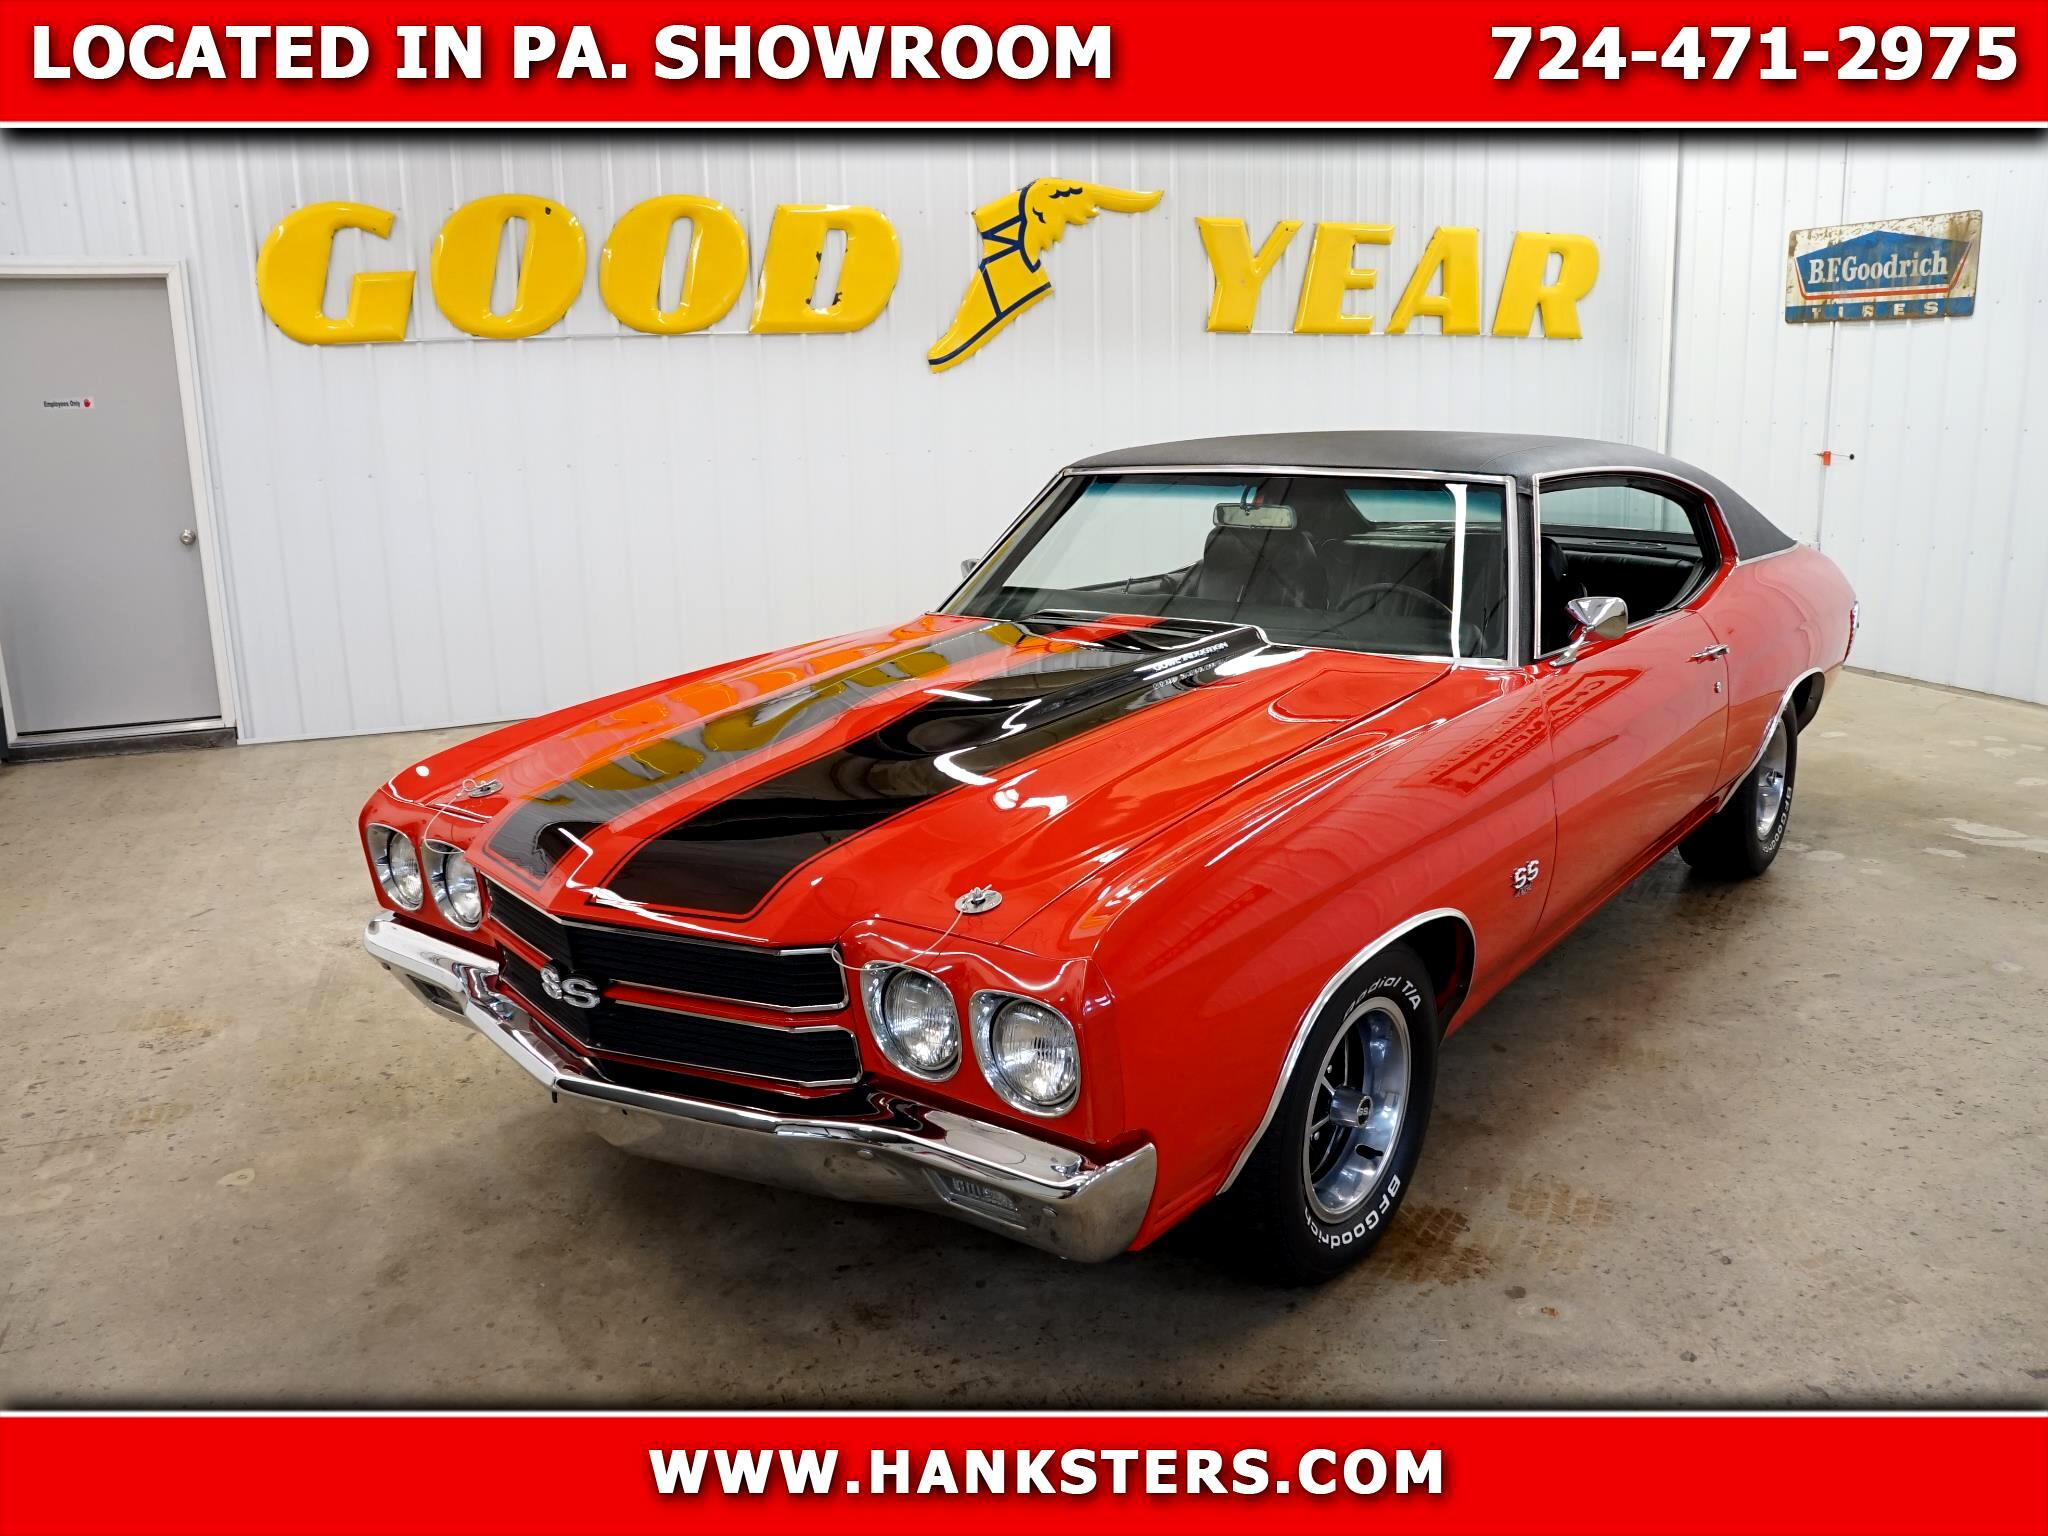 1970 Chevrolet Chevelle SS Style